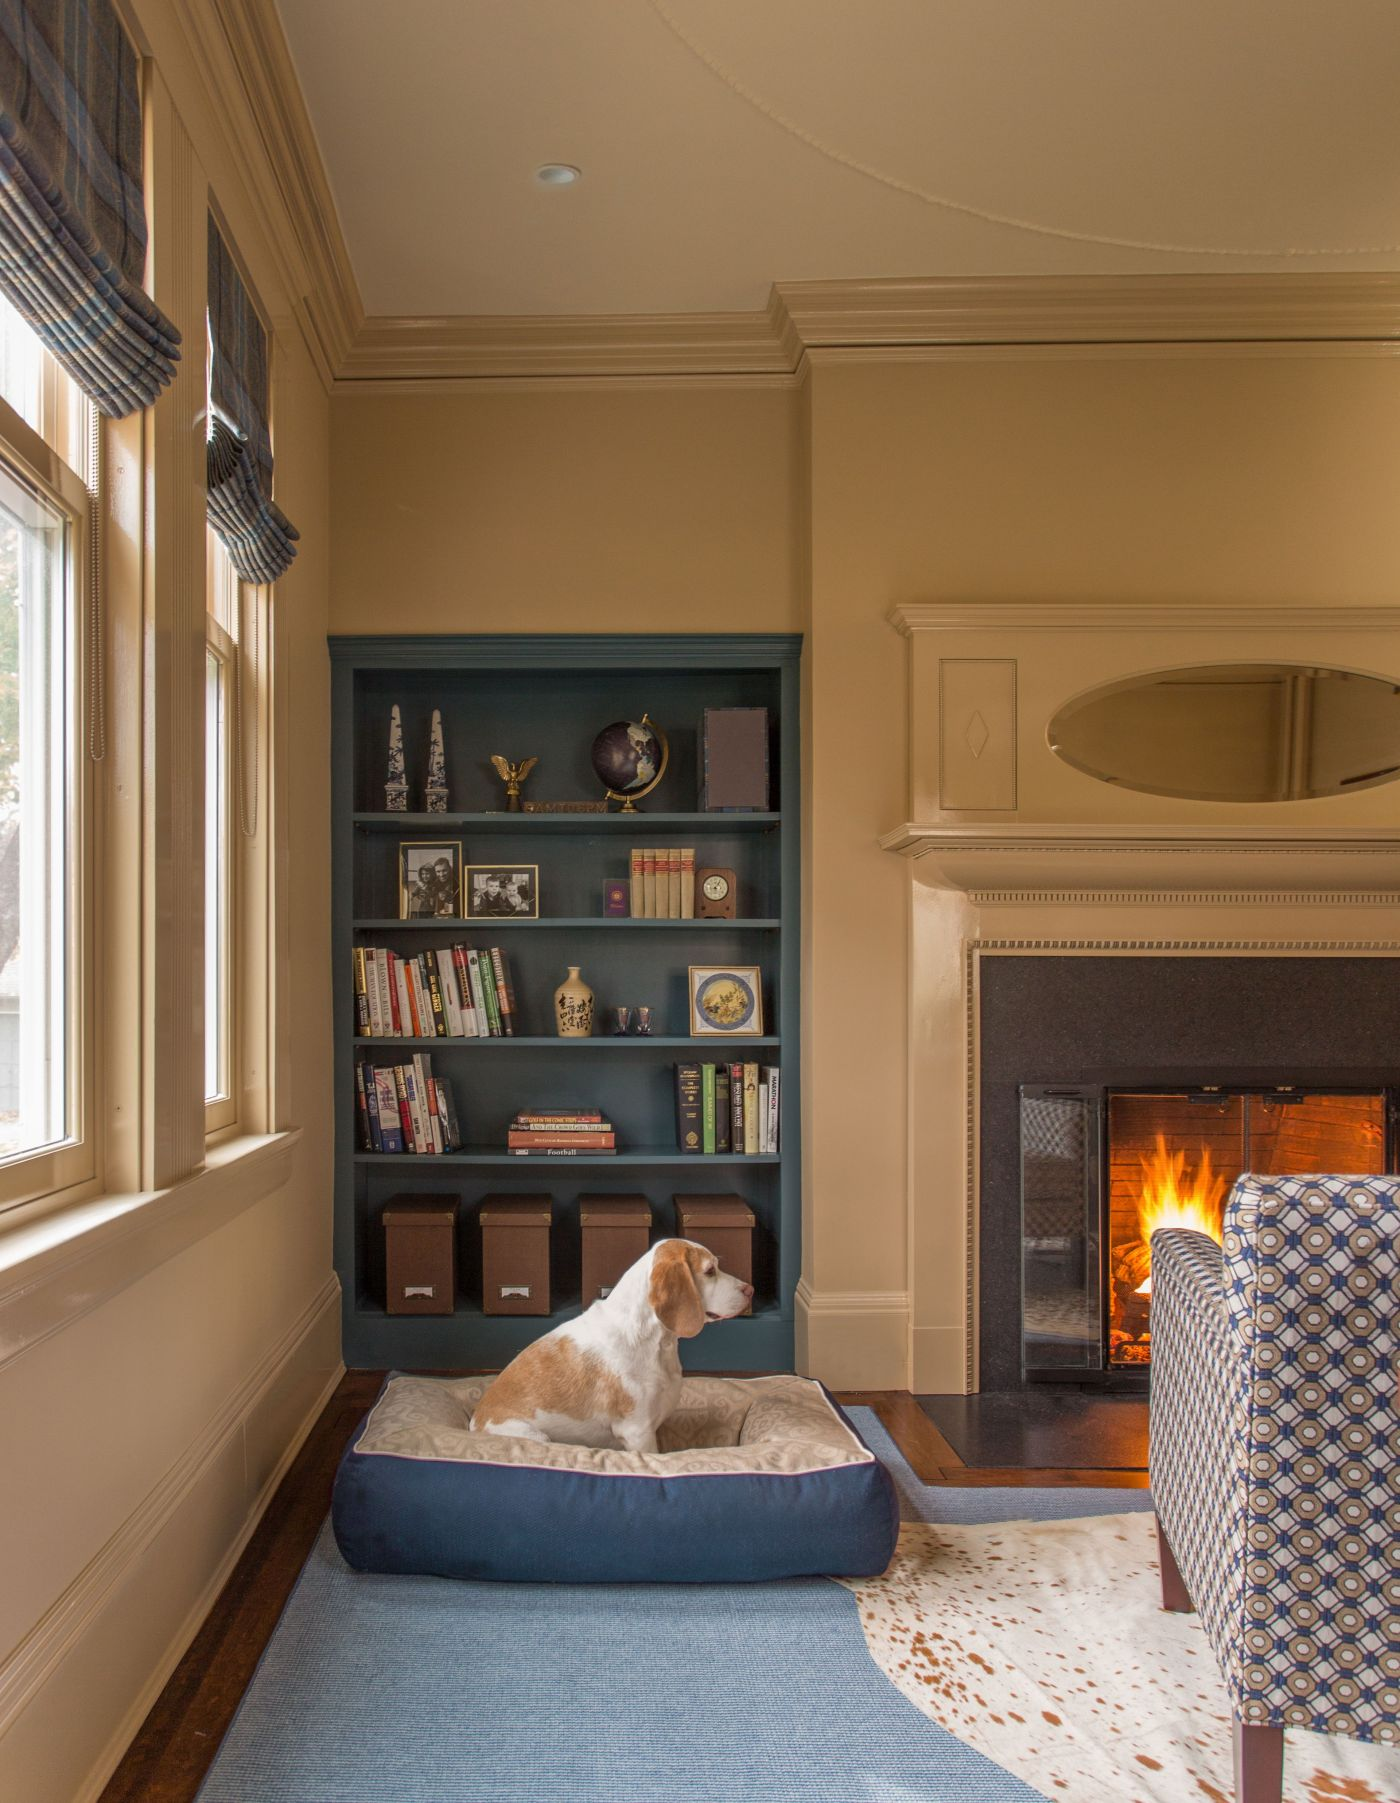 Dogs of Design | Interiors for Families